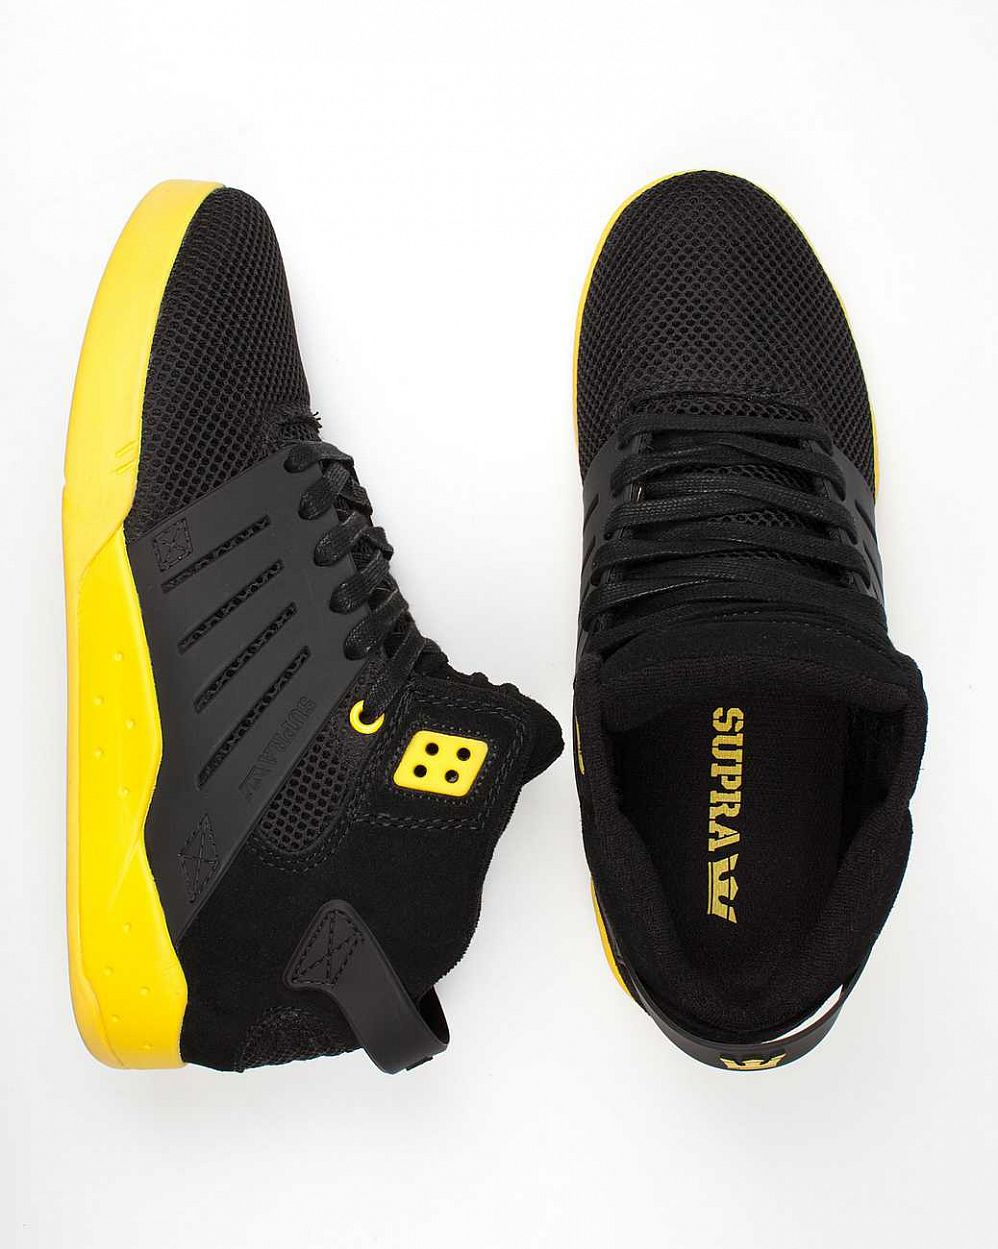 Кеды Supra Skytop III black yellow интернет-магазин в Москве